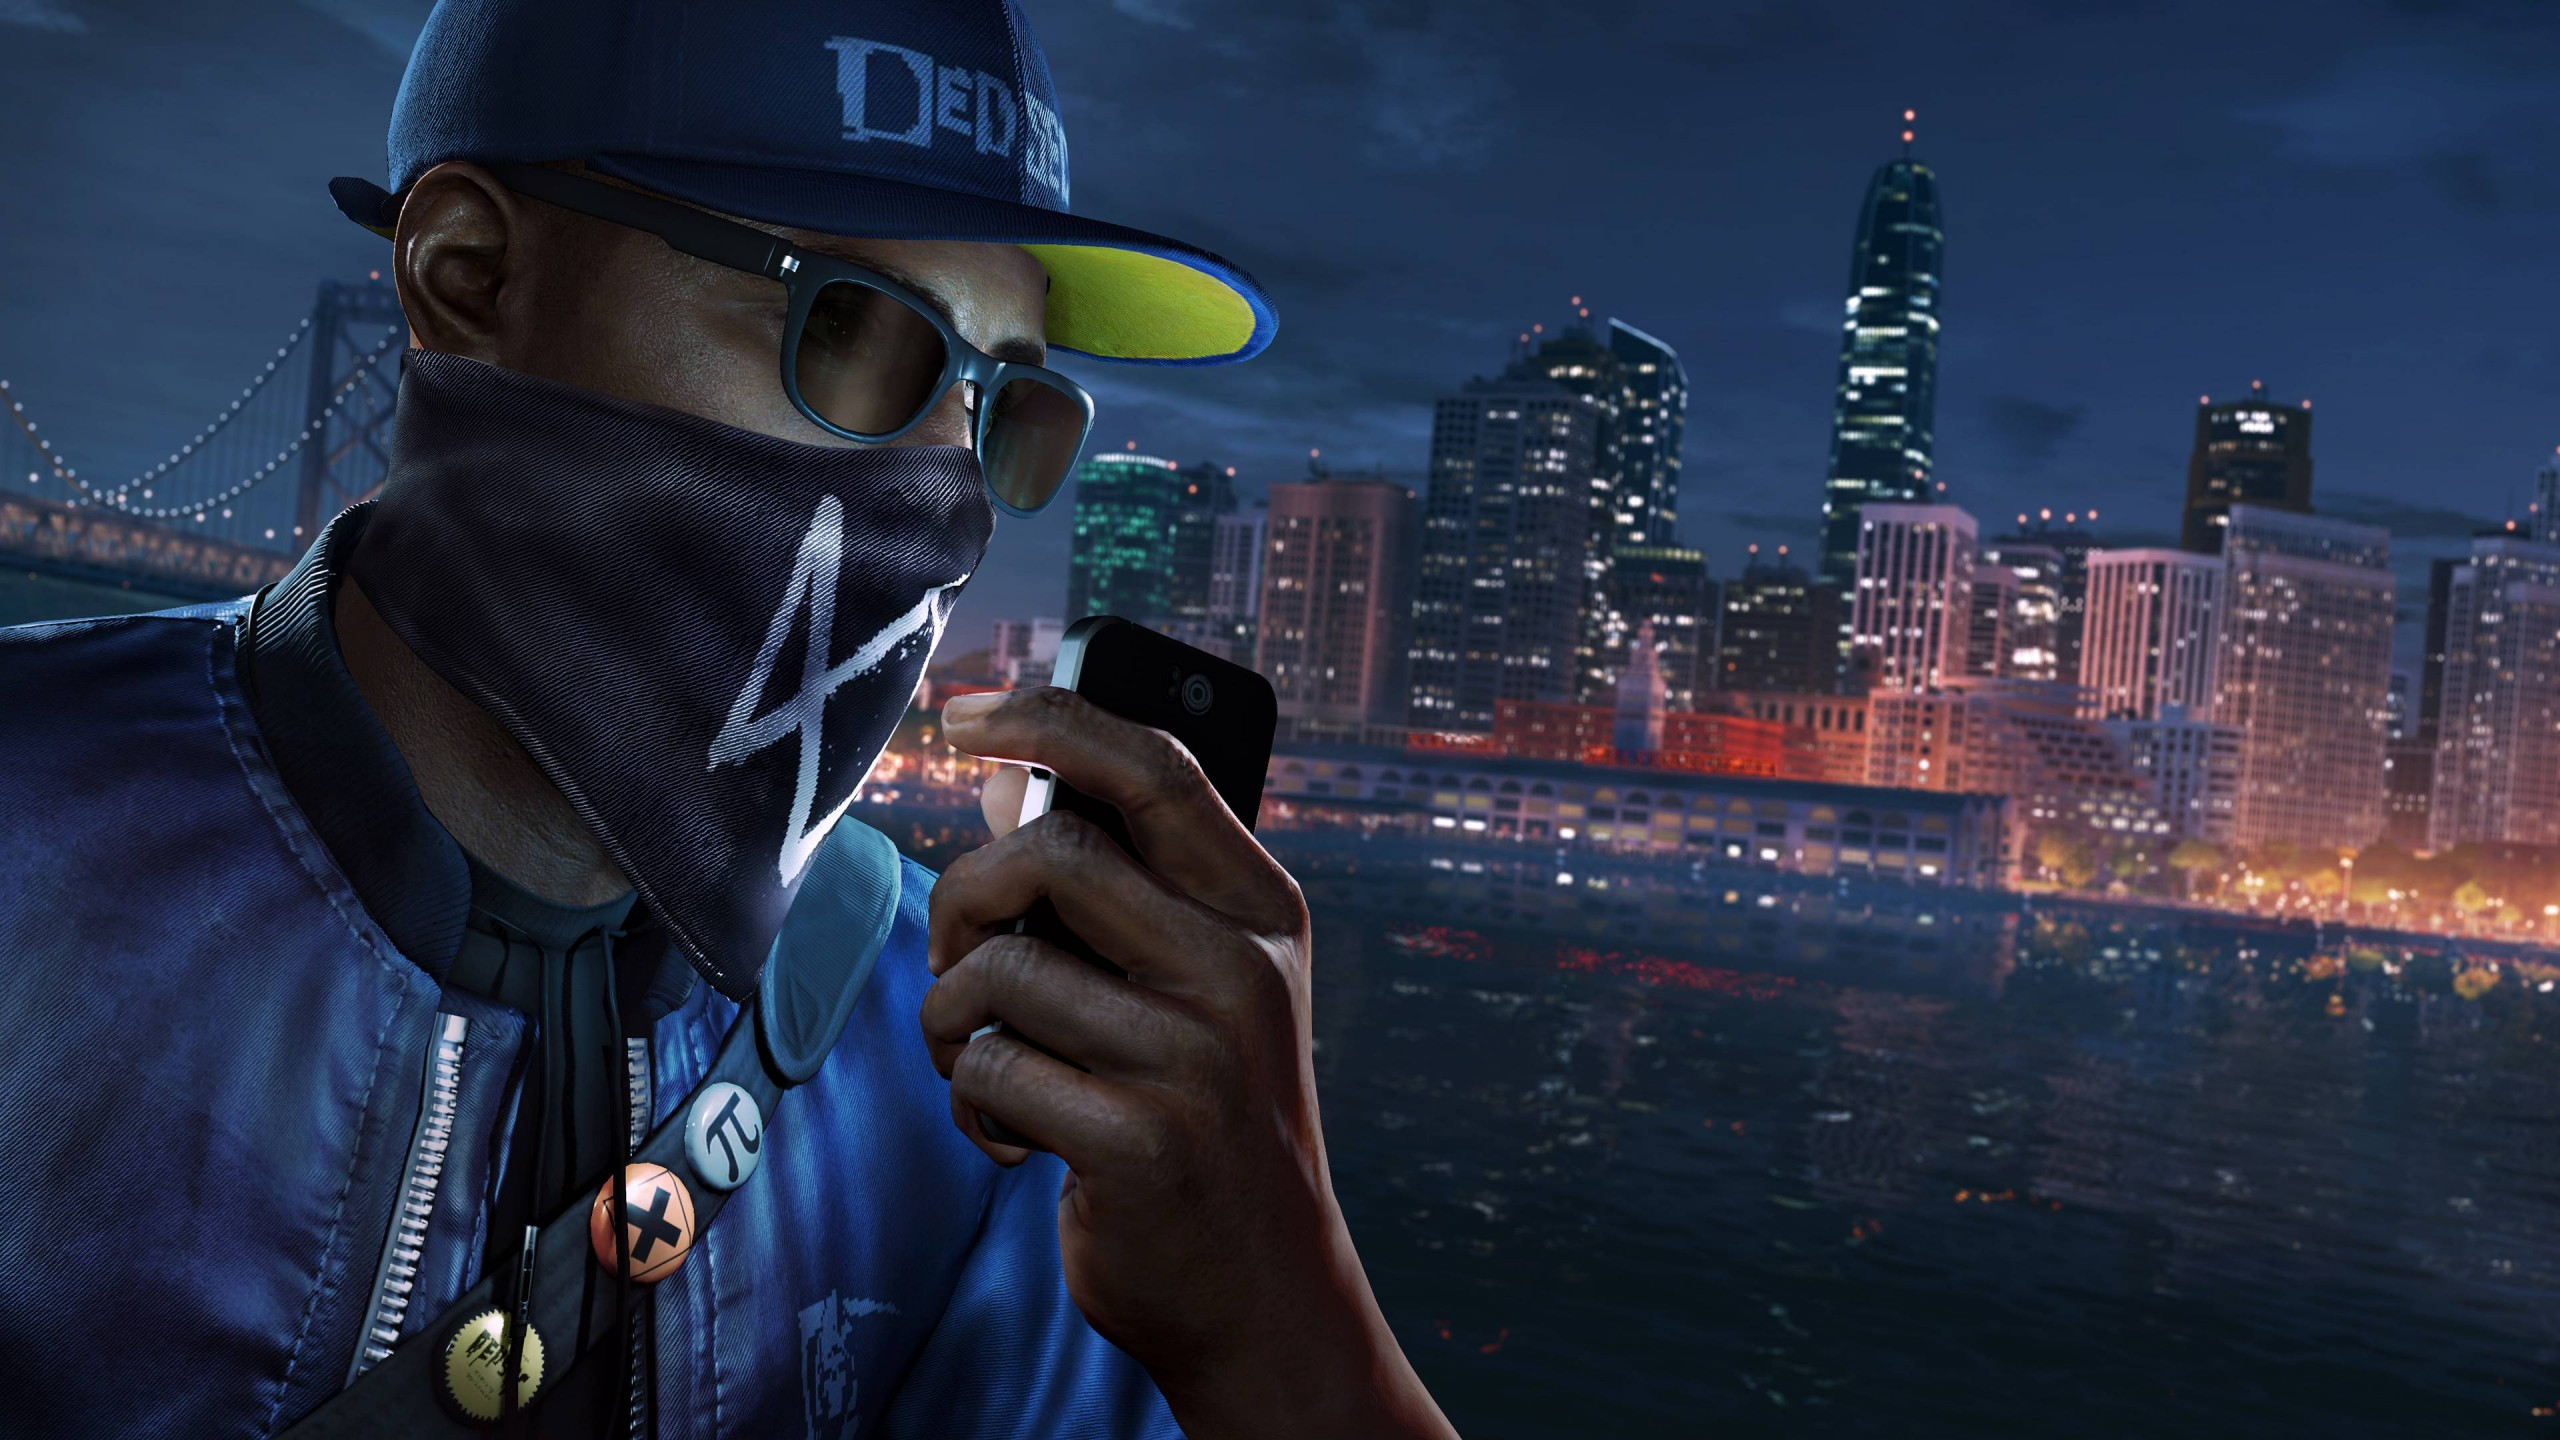 watch dogs 2 wallpaper 62009